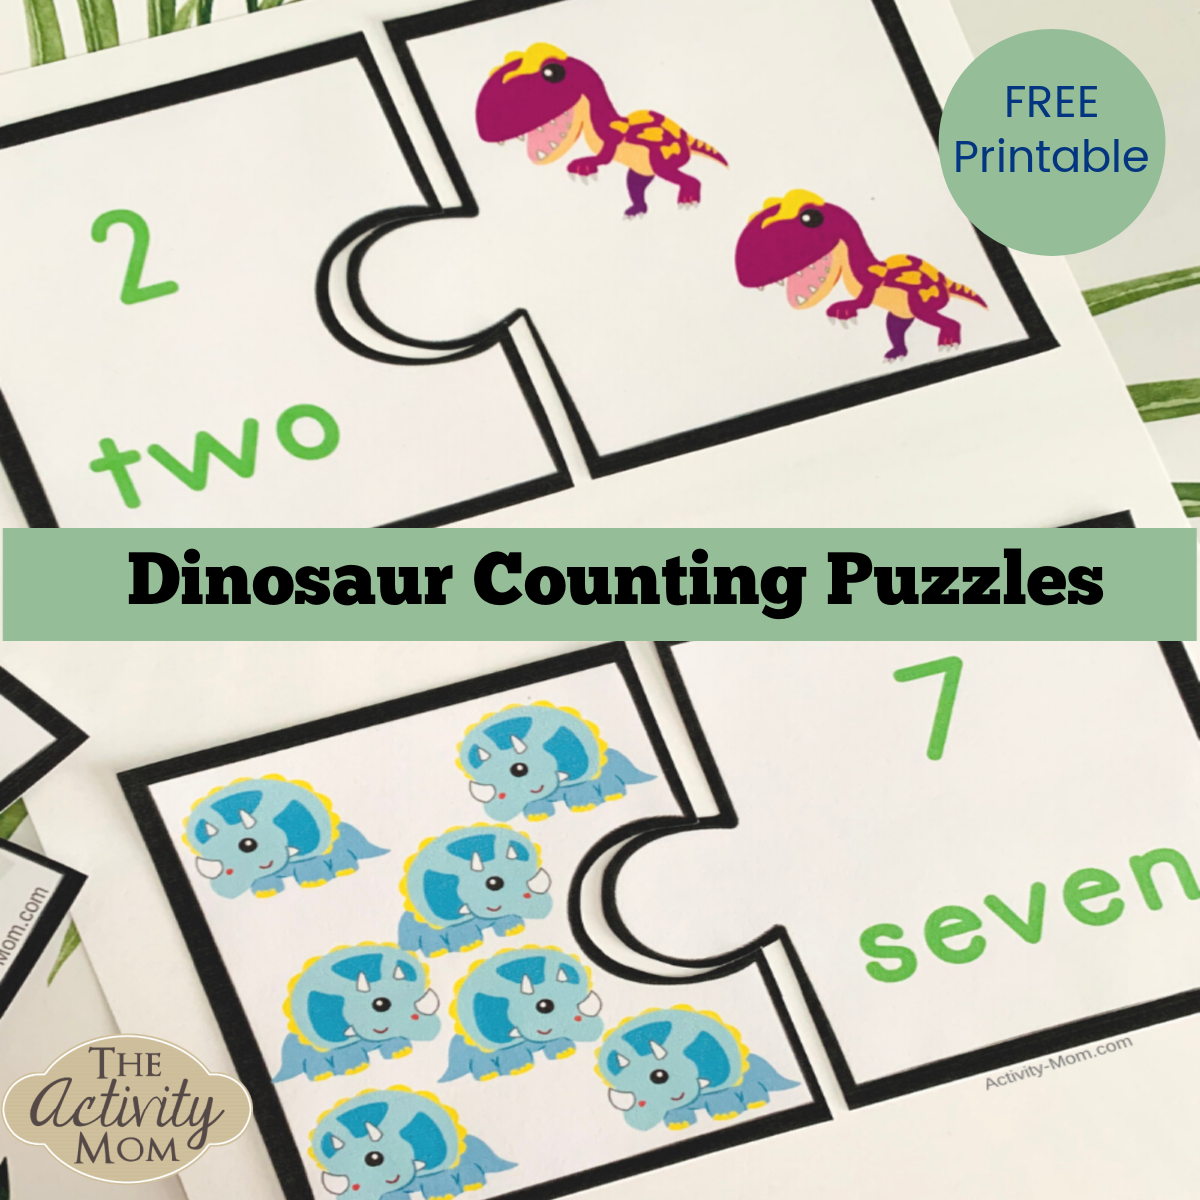 Dinosaur Counting Puzzles